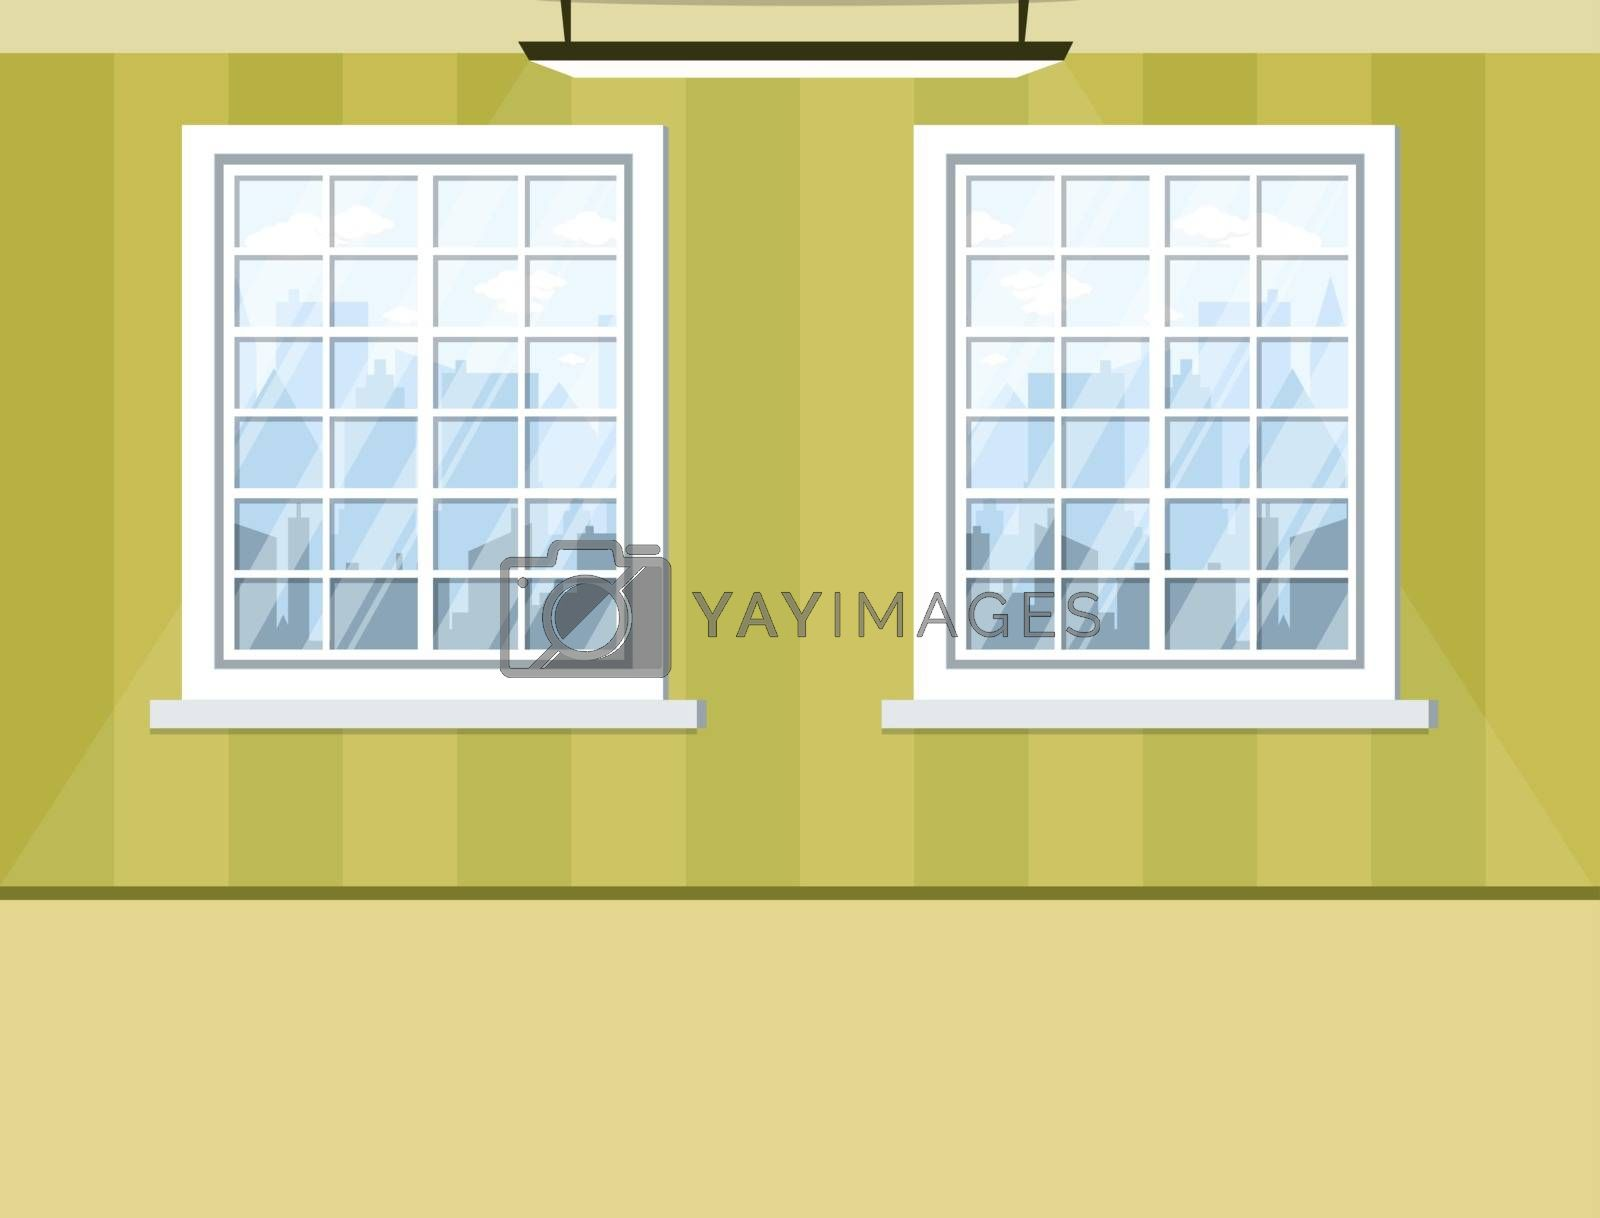 empty room with windows green wall and floor. Background for des by wektorygrafika